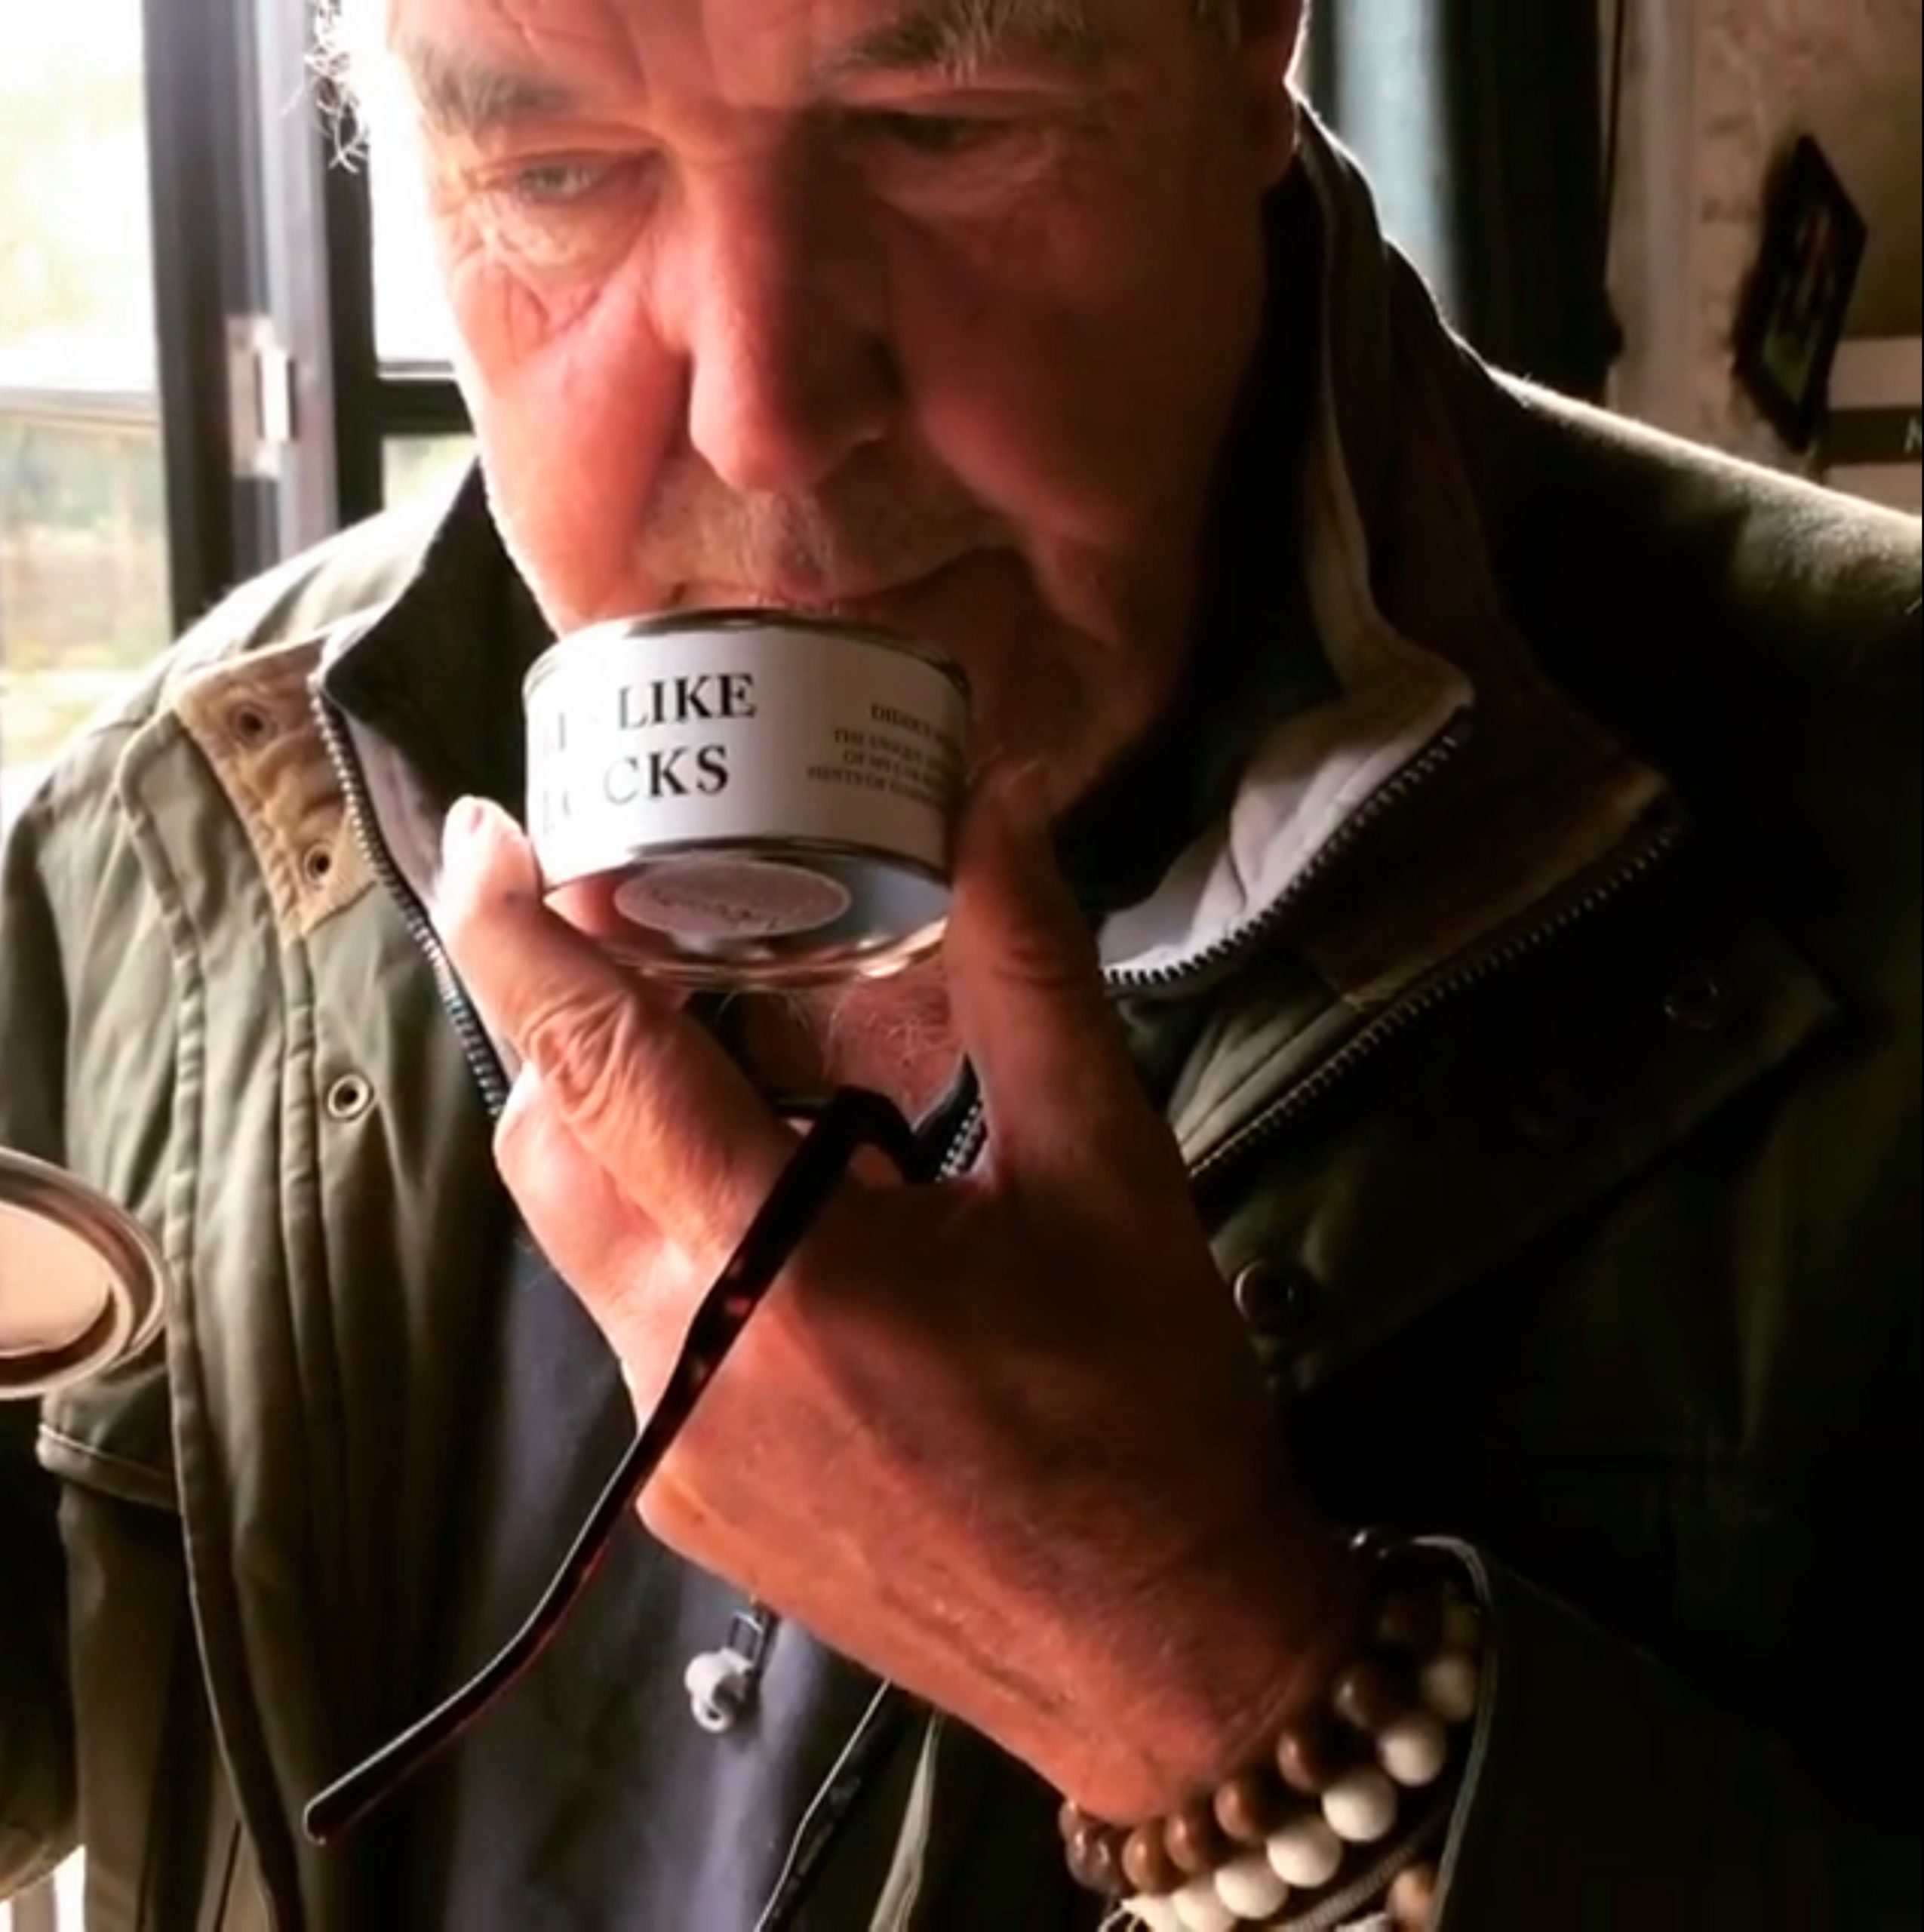 Jeremy Clarkson flogs candle that smells like his privates after being inspired by Gwyneth Paltrow | The Sun